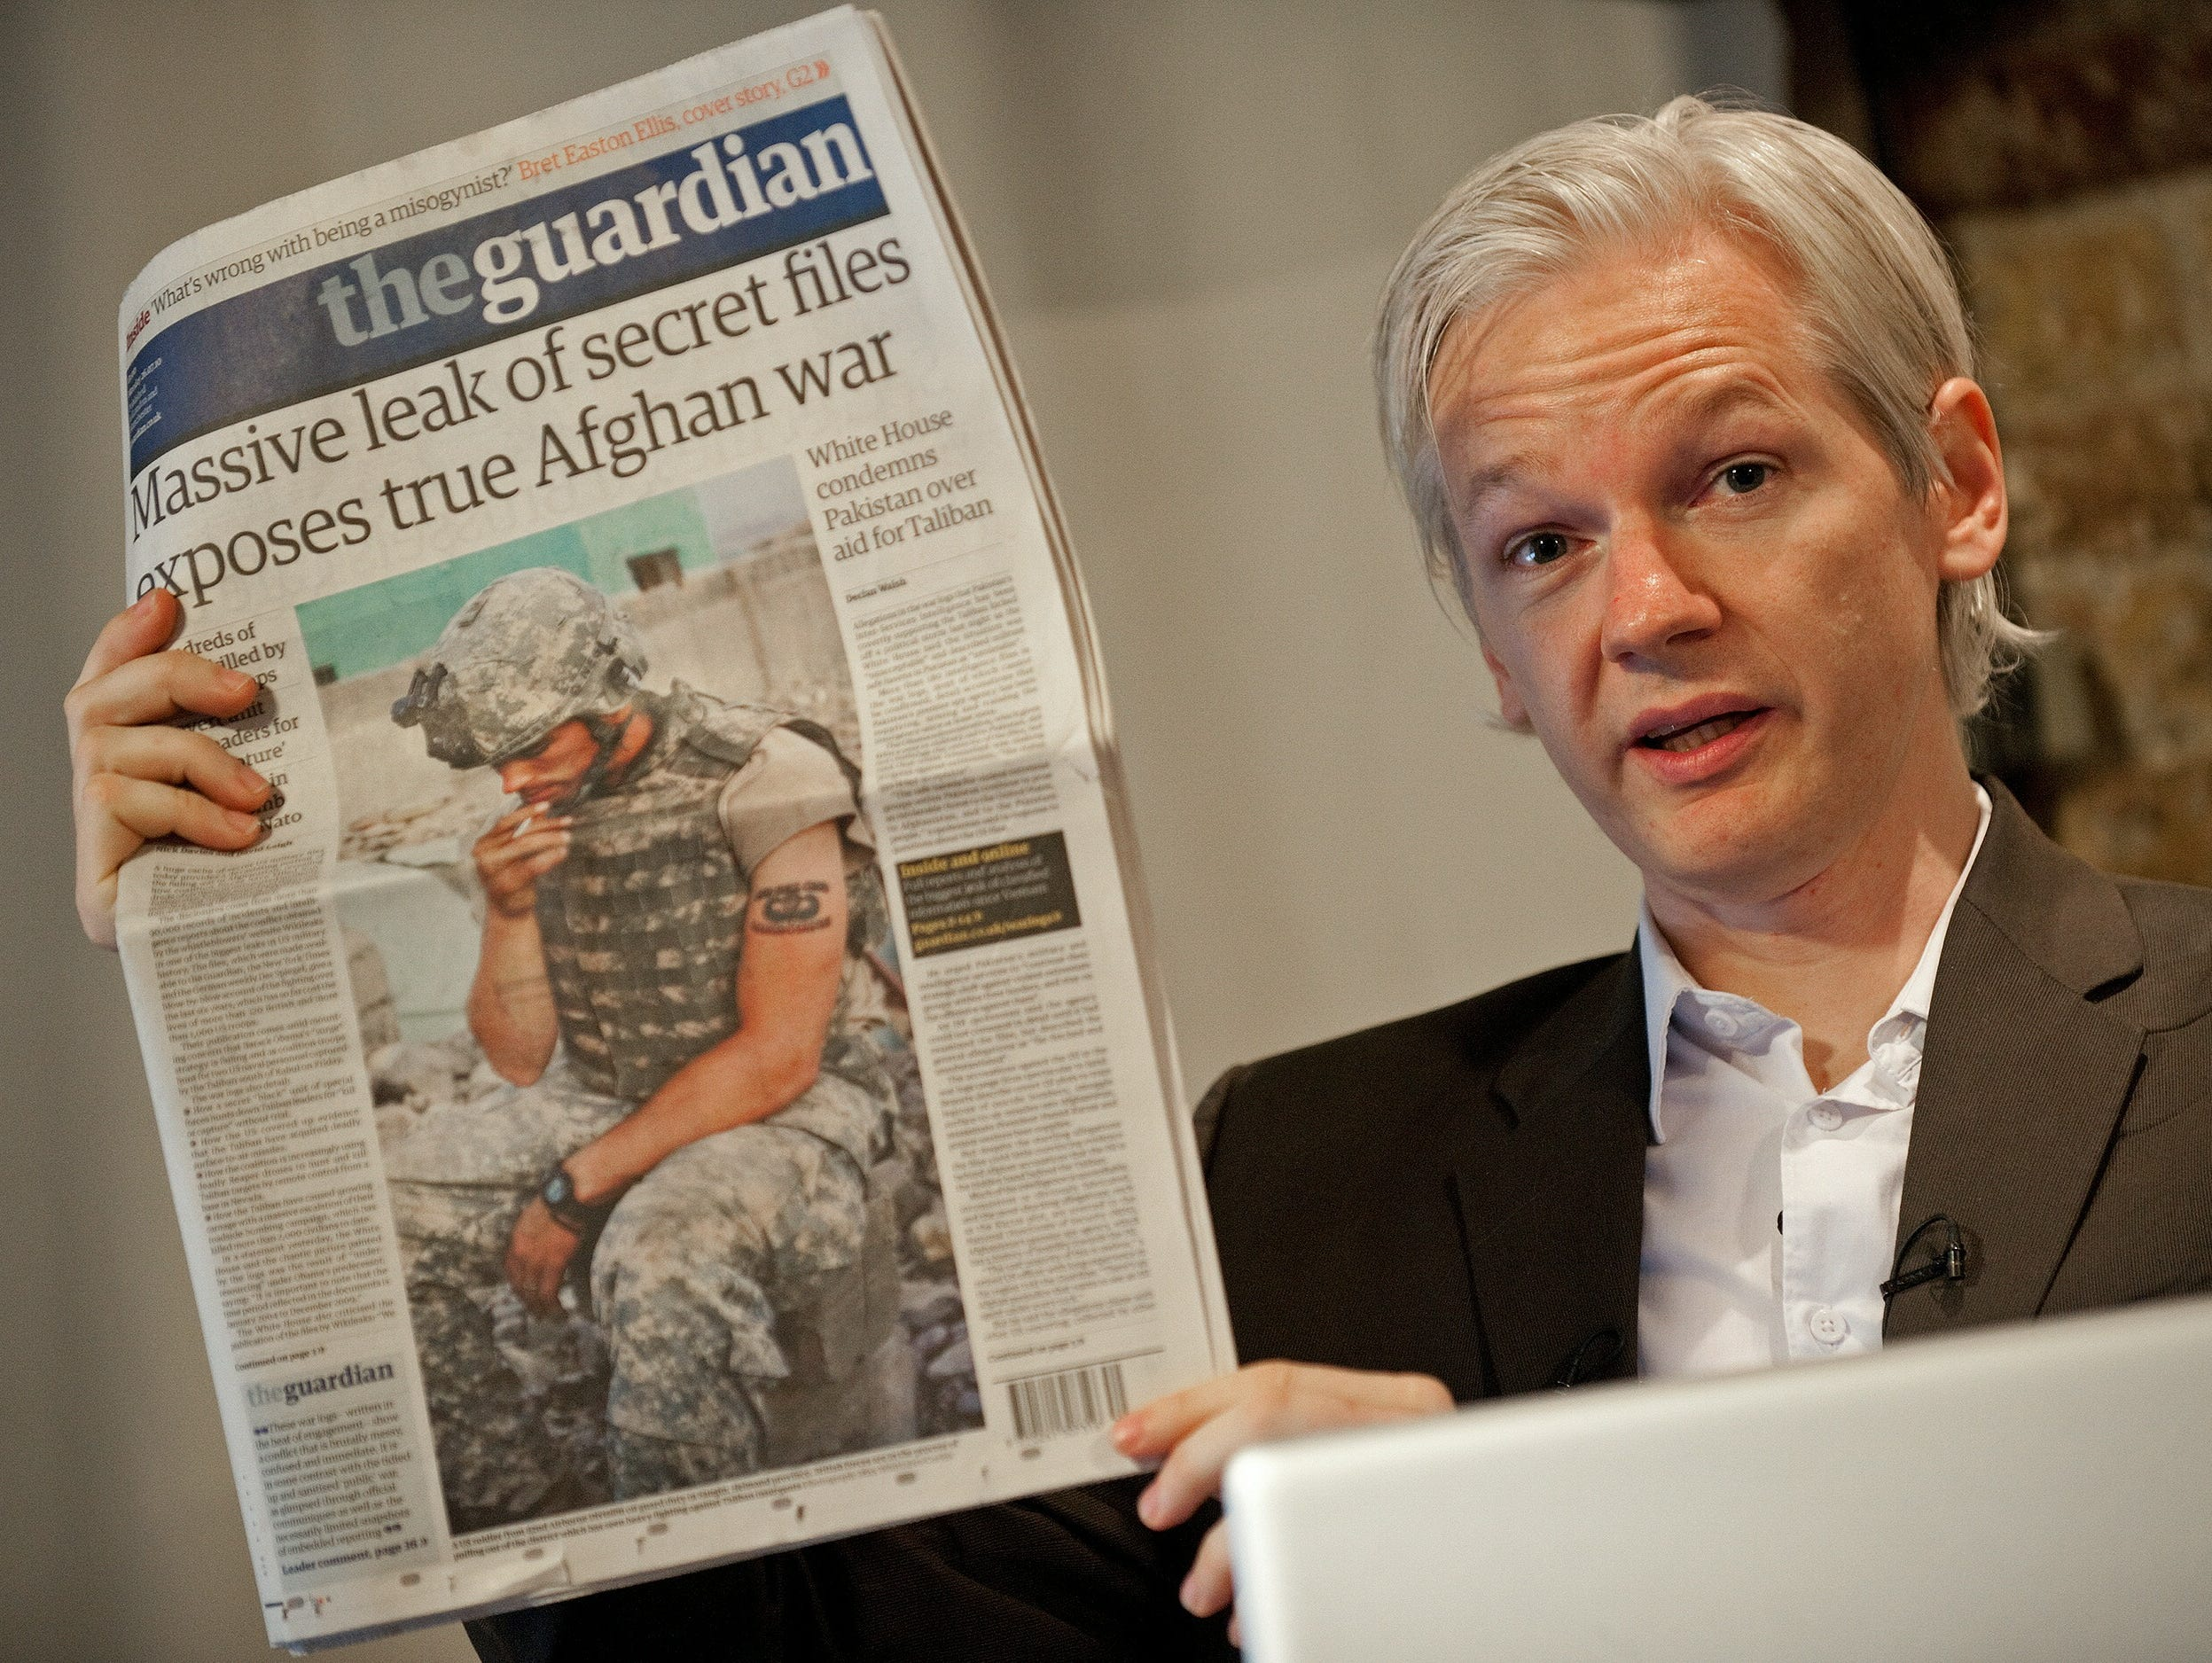 Julian Assange, holds up a copy of today's Guardian newspaper during a press conference in London on July 26, 2010. Assange first rose to prominence after Wikileaks published of thousands of leaked military files about the war in Afghanistan  In all, some 92,000 documents dating back to 2004 were released by the New York Times, Britain's Guardian newspaper, and Germany's Der Spiegel news weekly.